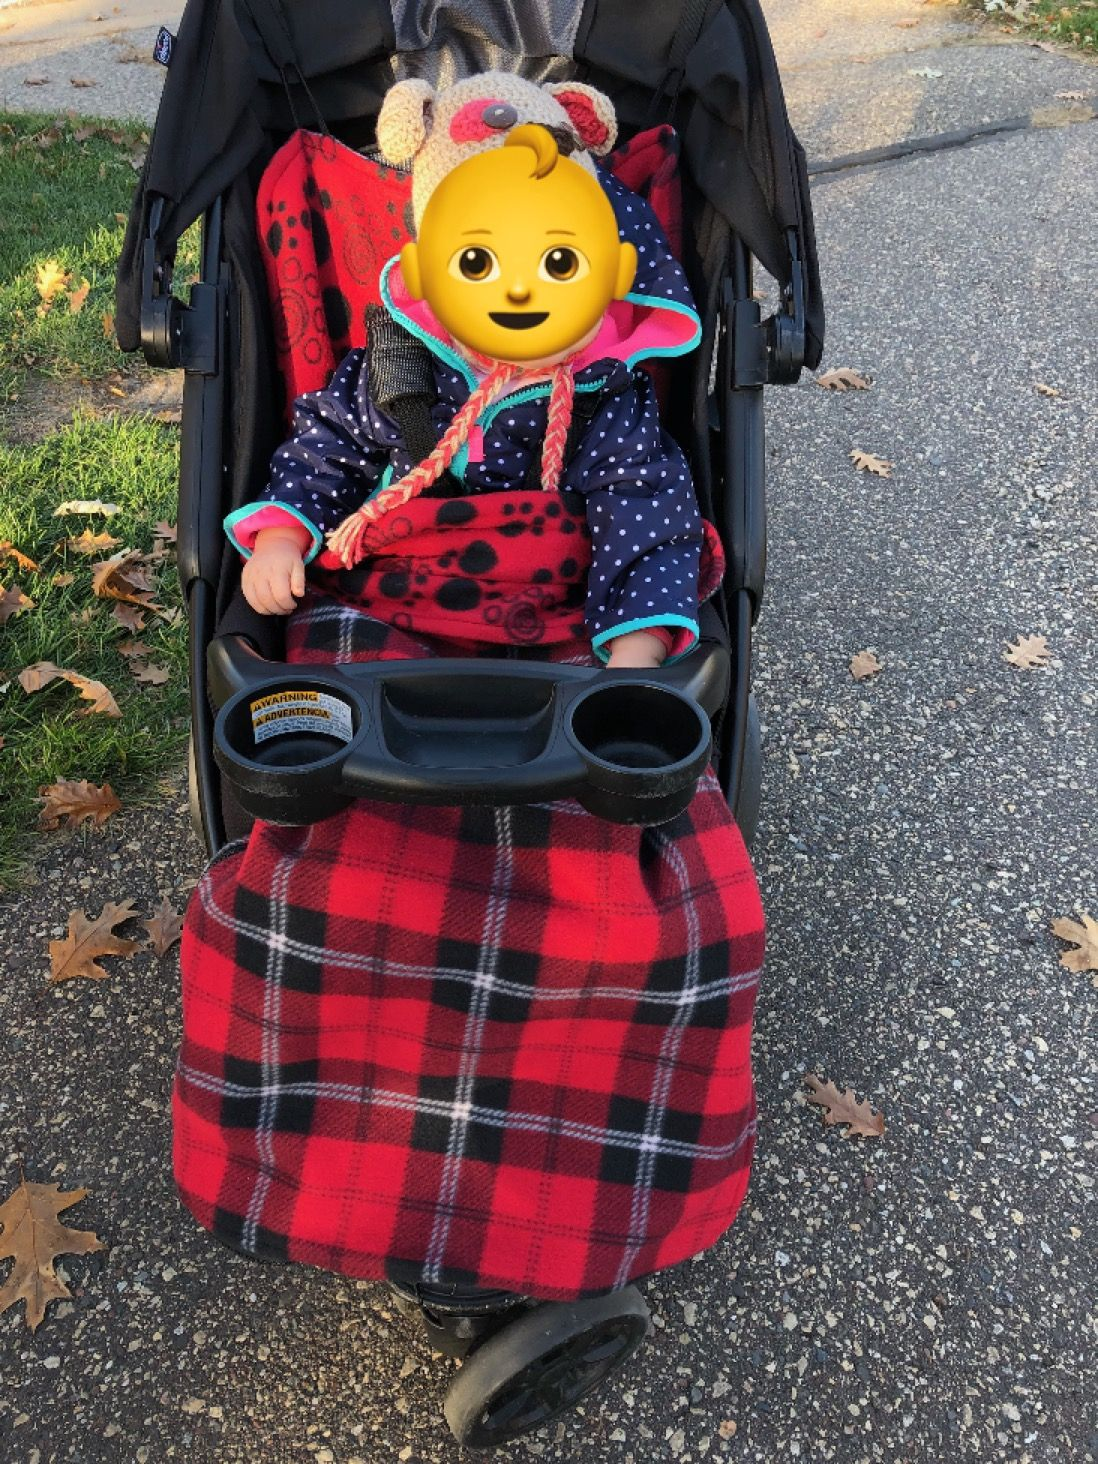 Baby stroller blanket that secures to stroller so child